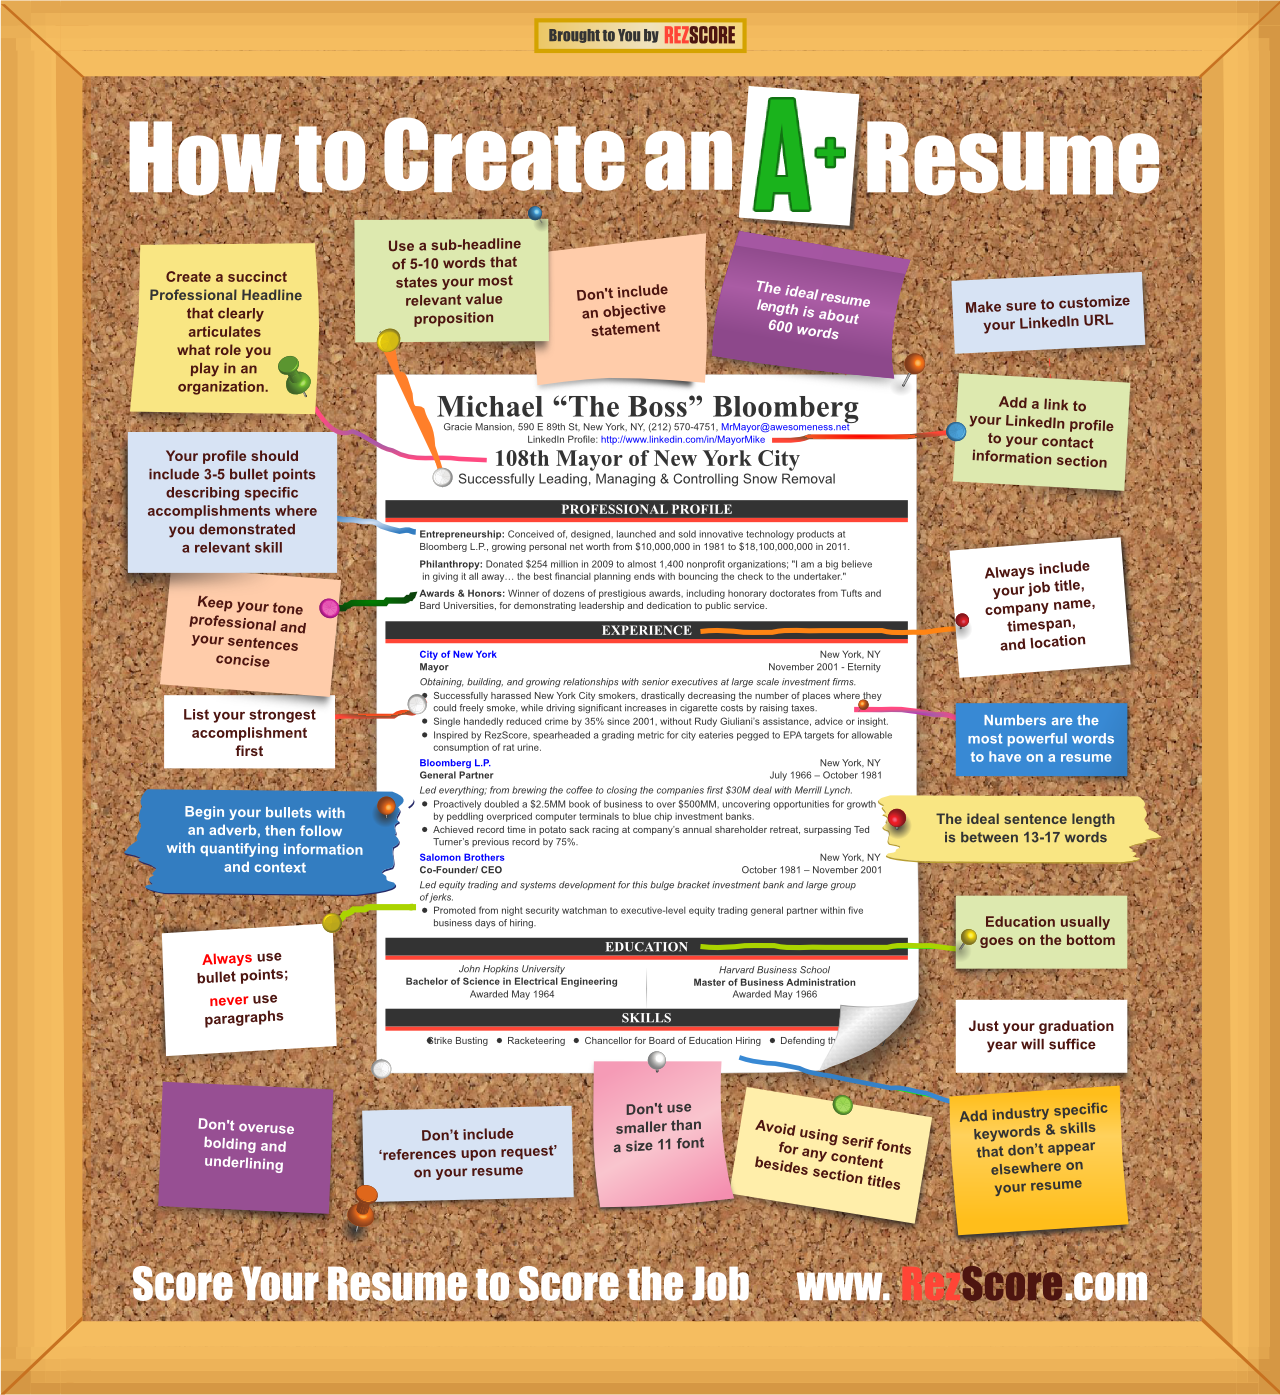 how to create an a resume resume job career opportunity employment